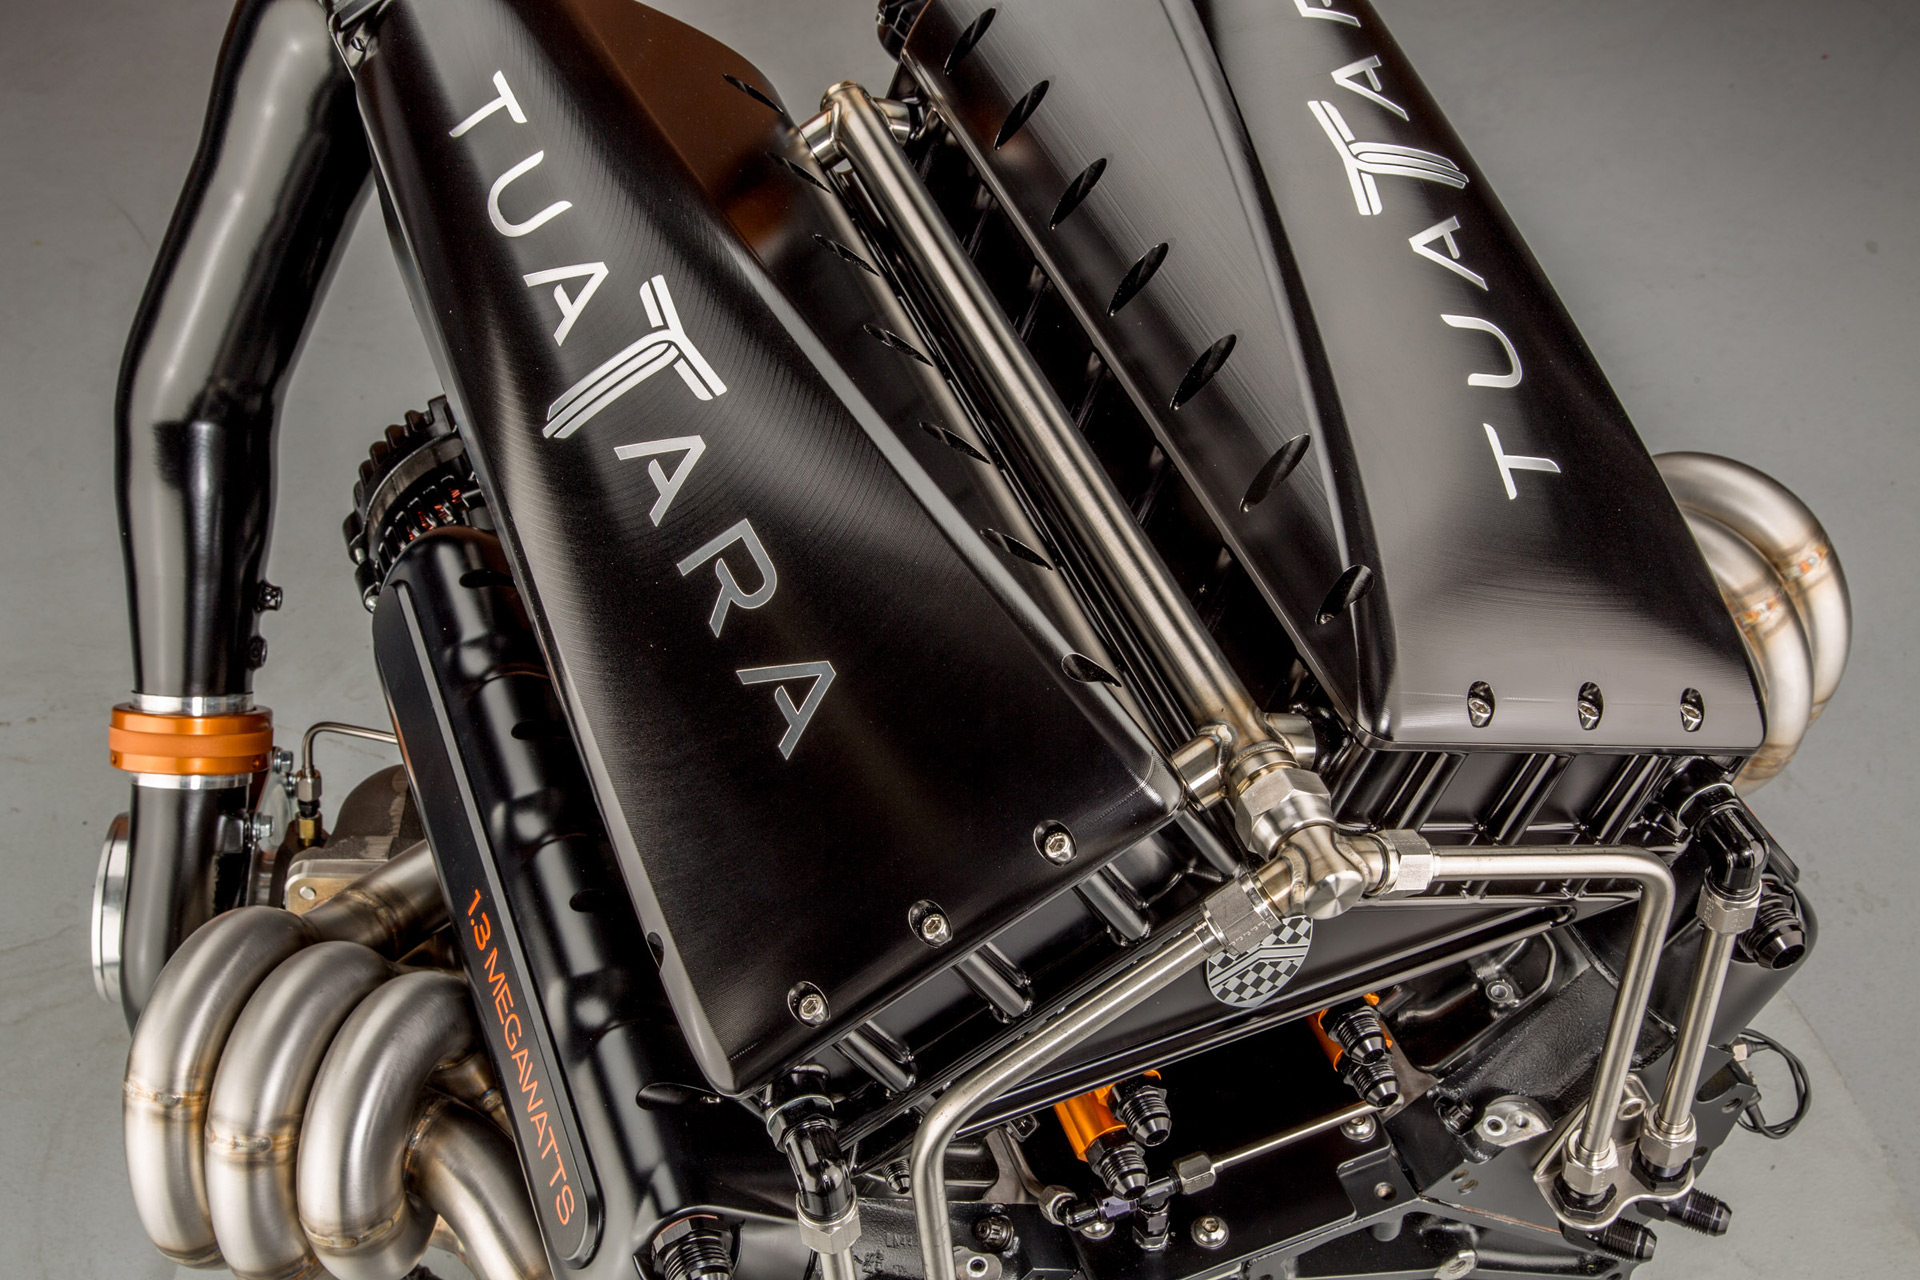 SSC_Tuatara_engine_0006